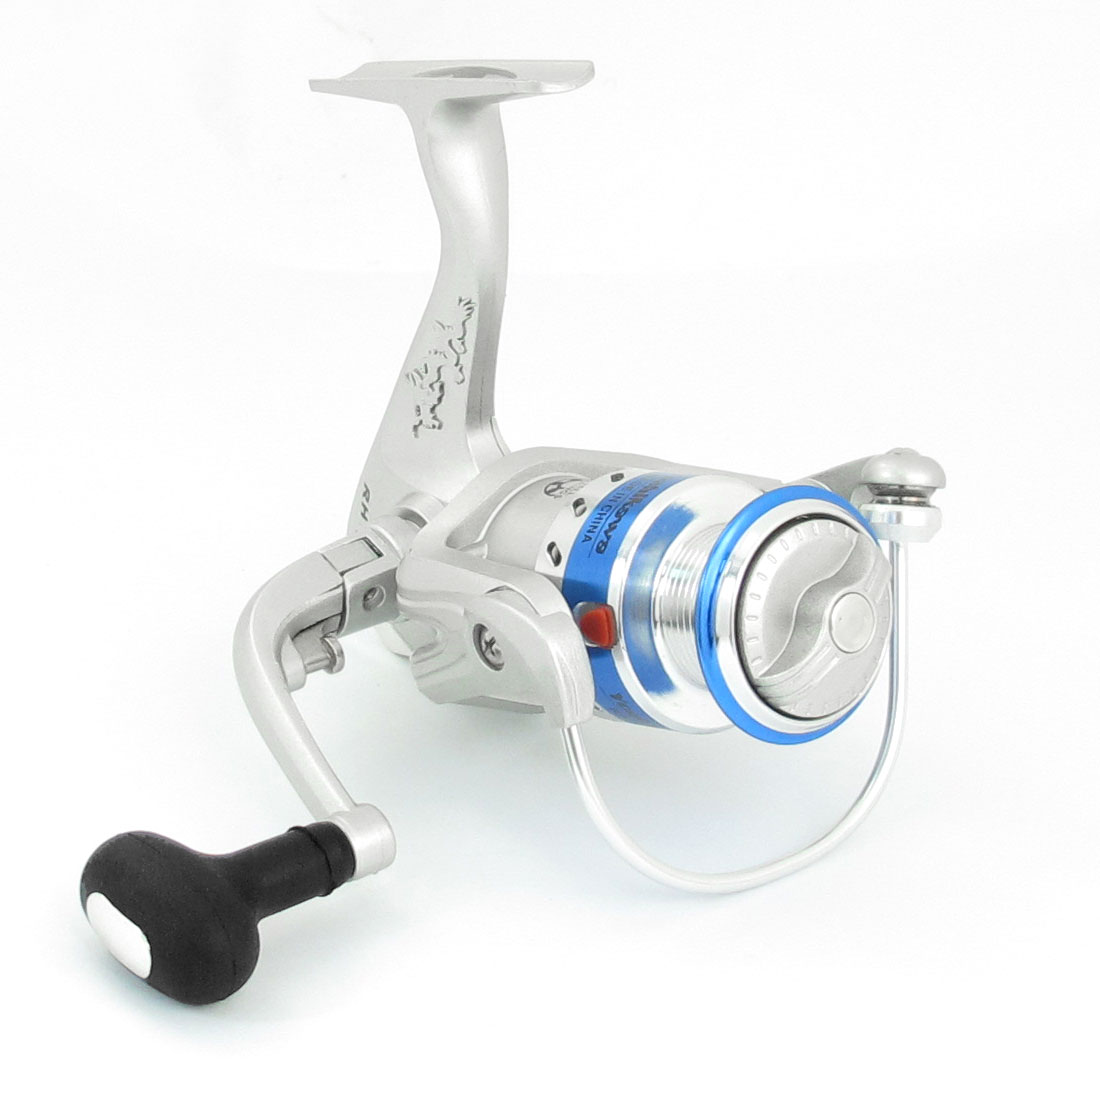 Outdoor Fishing 6 Balls Bearing Gear Ratio 5.1:1 Spinning Reel